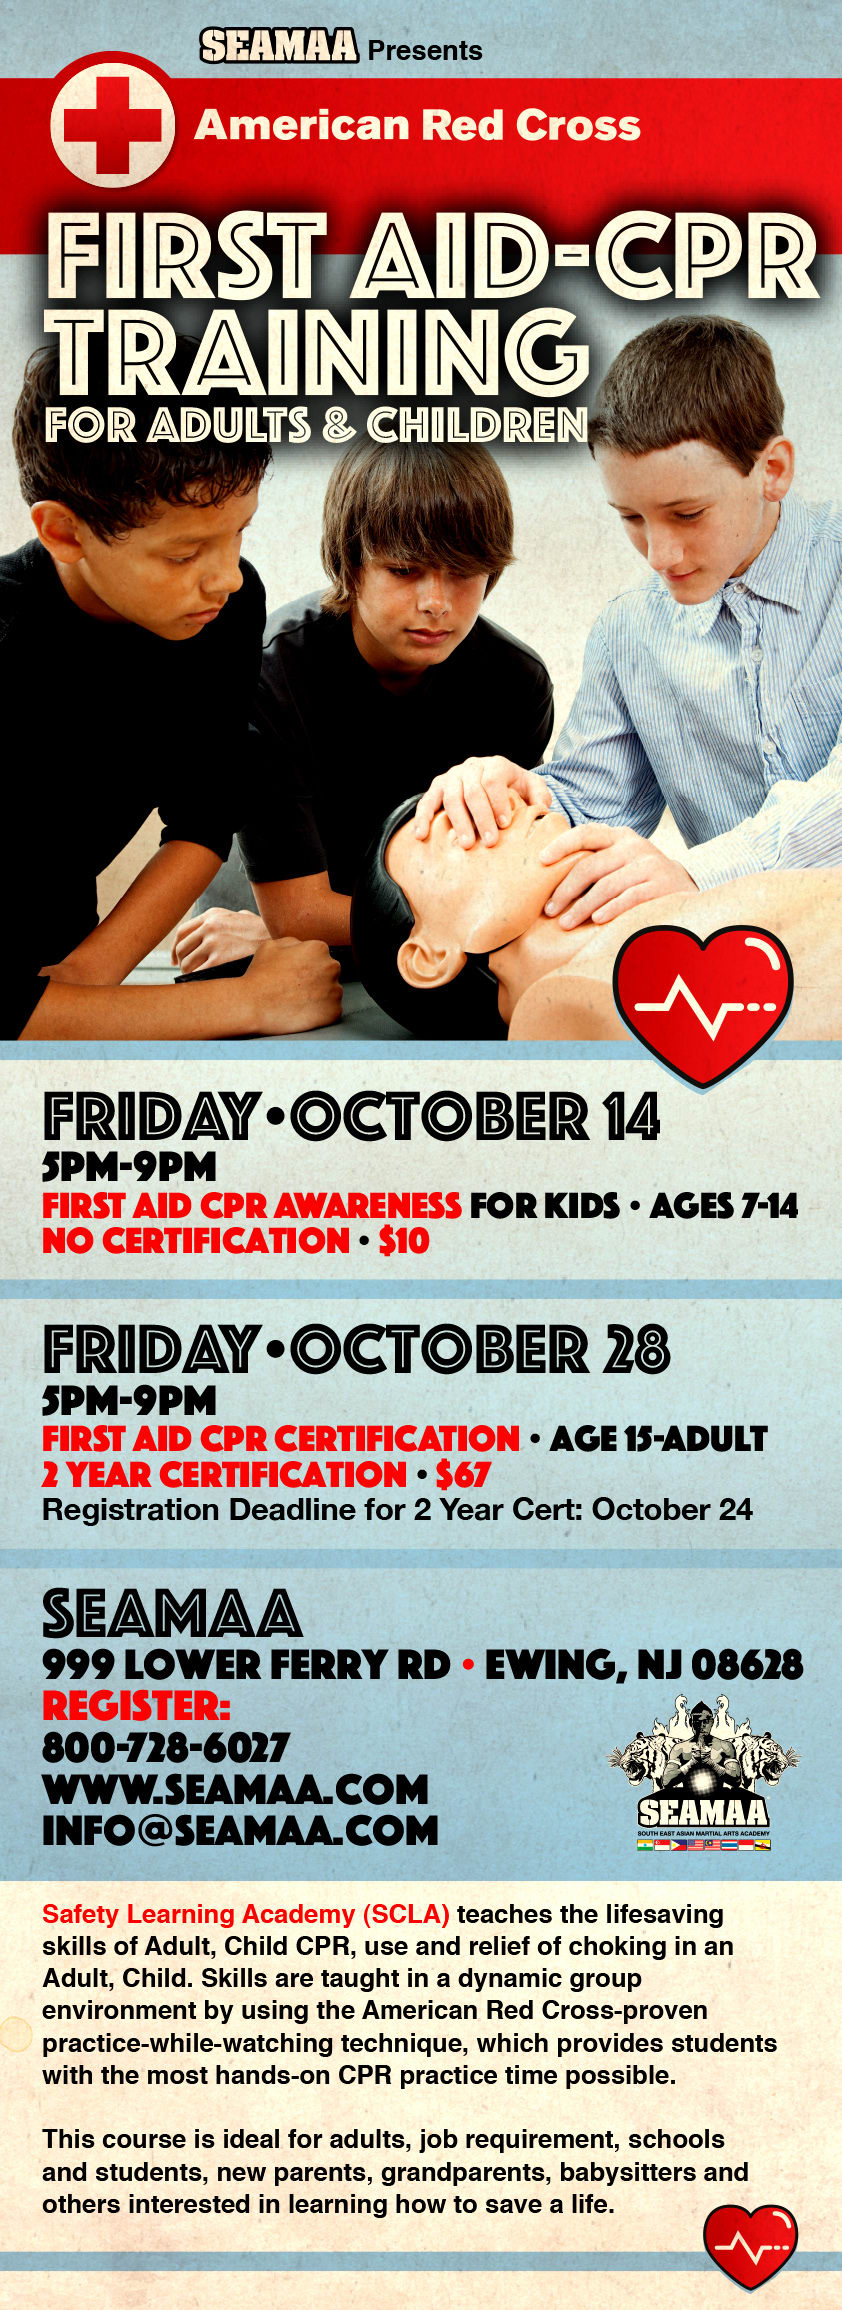 First Aid Cpr Training For Adults Children October 2016